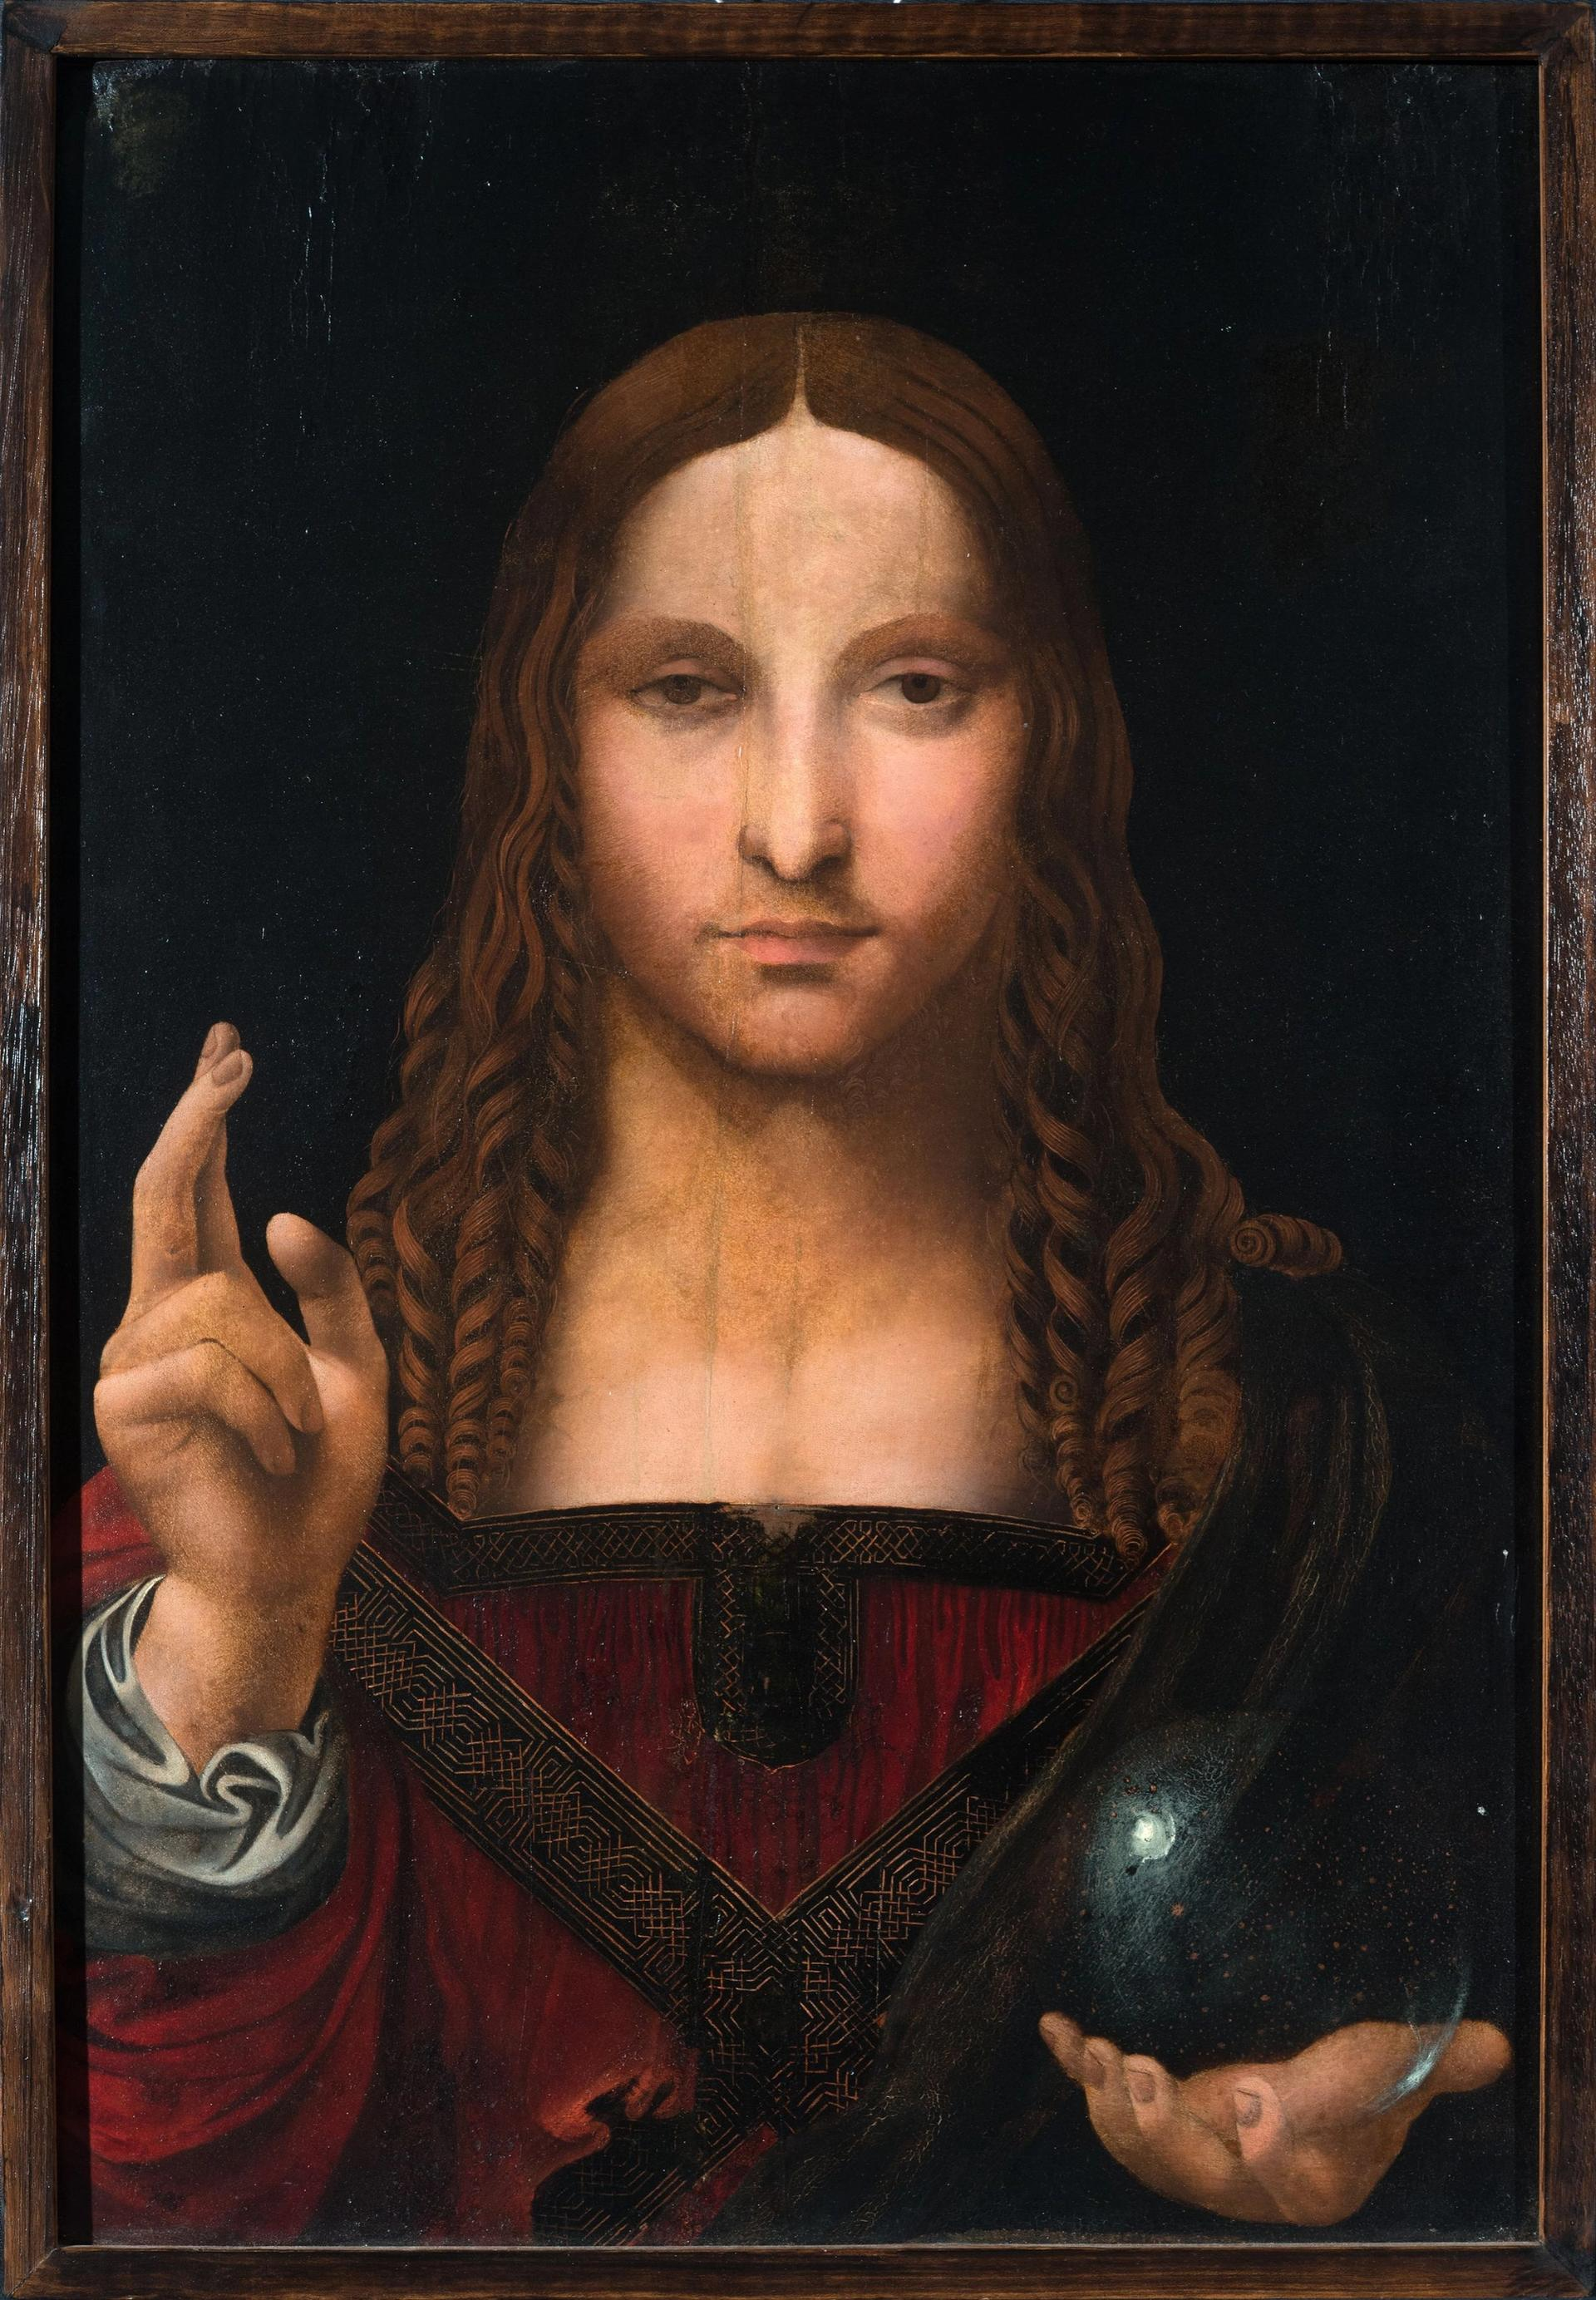 The Naples Salvator Mundi,  attributed to a follower of Leonardo, was stolen from the Museum of San Domenico Maggiore © SAN DOMENICO MAGGIORE, NAPLES